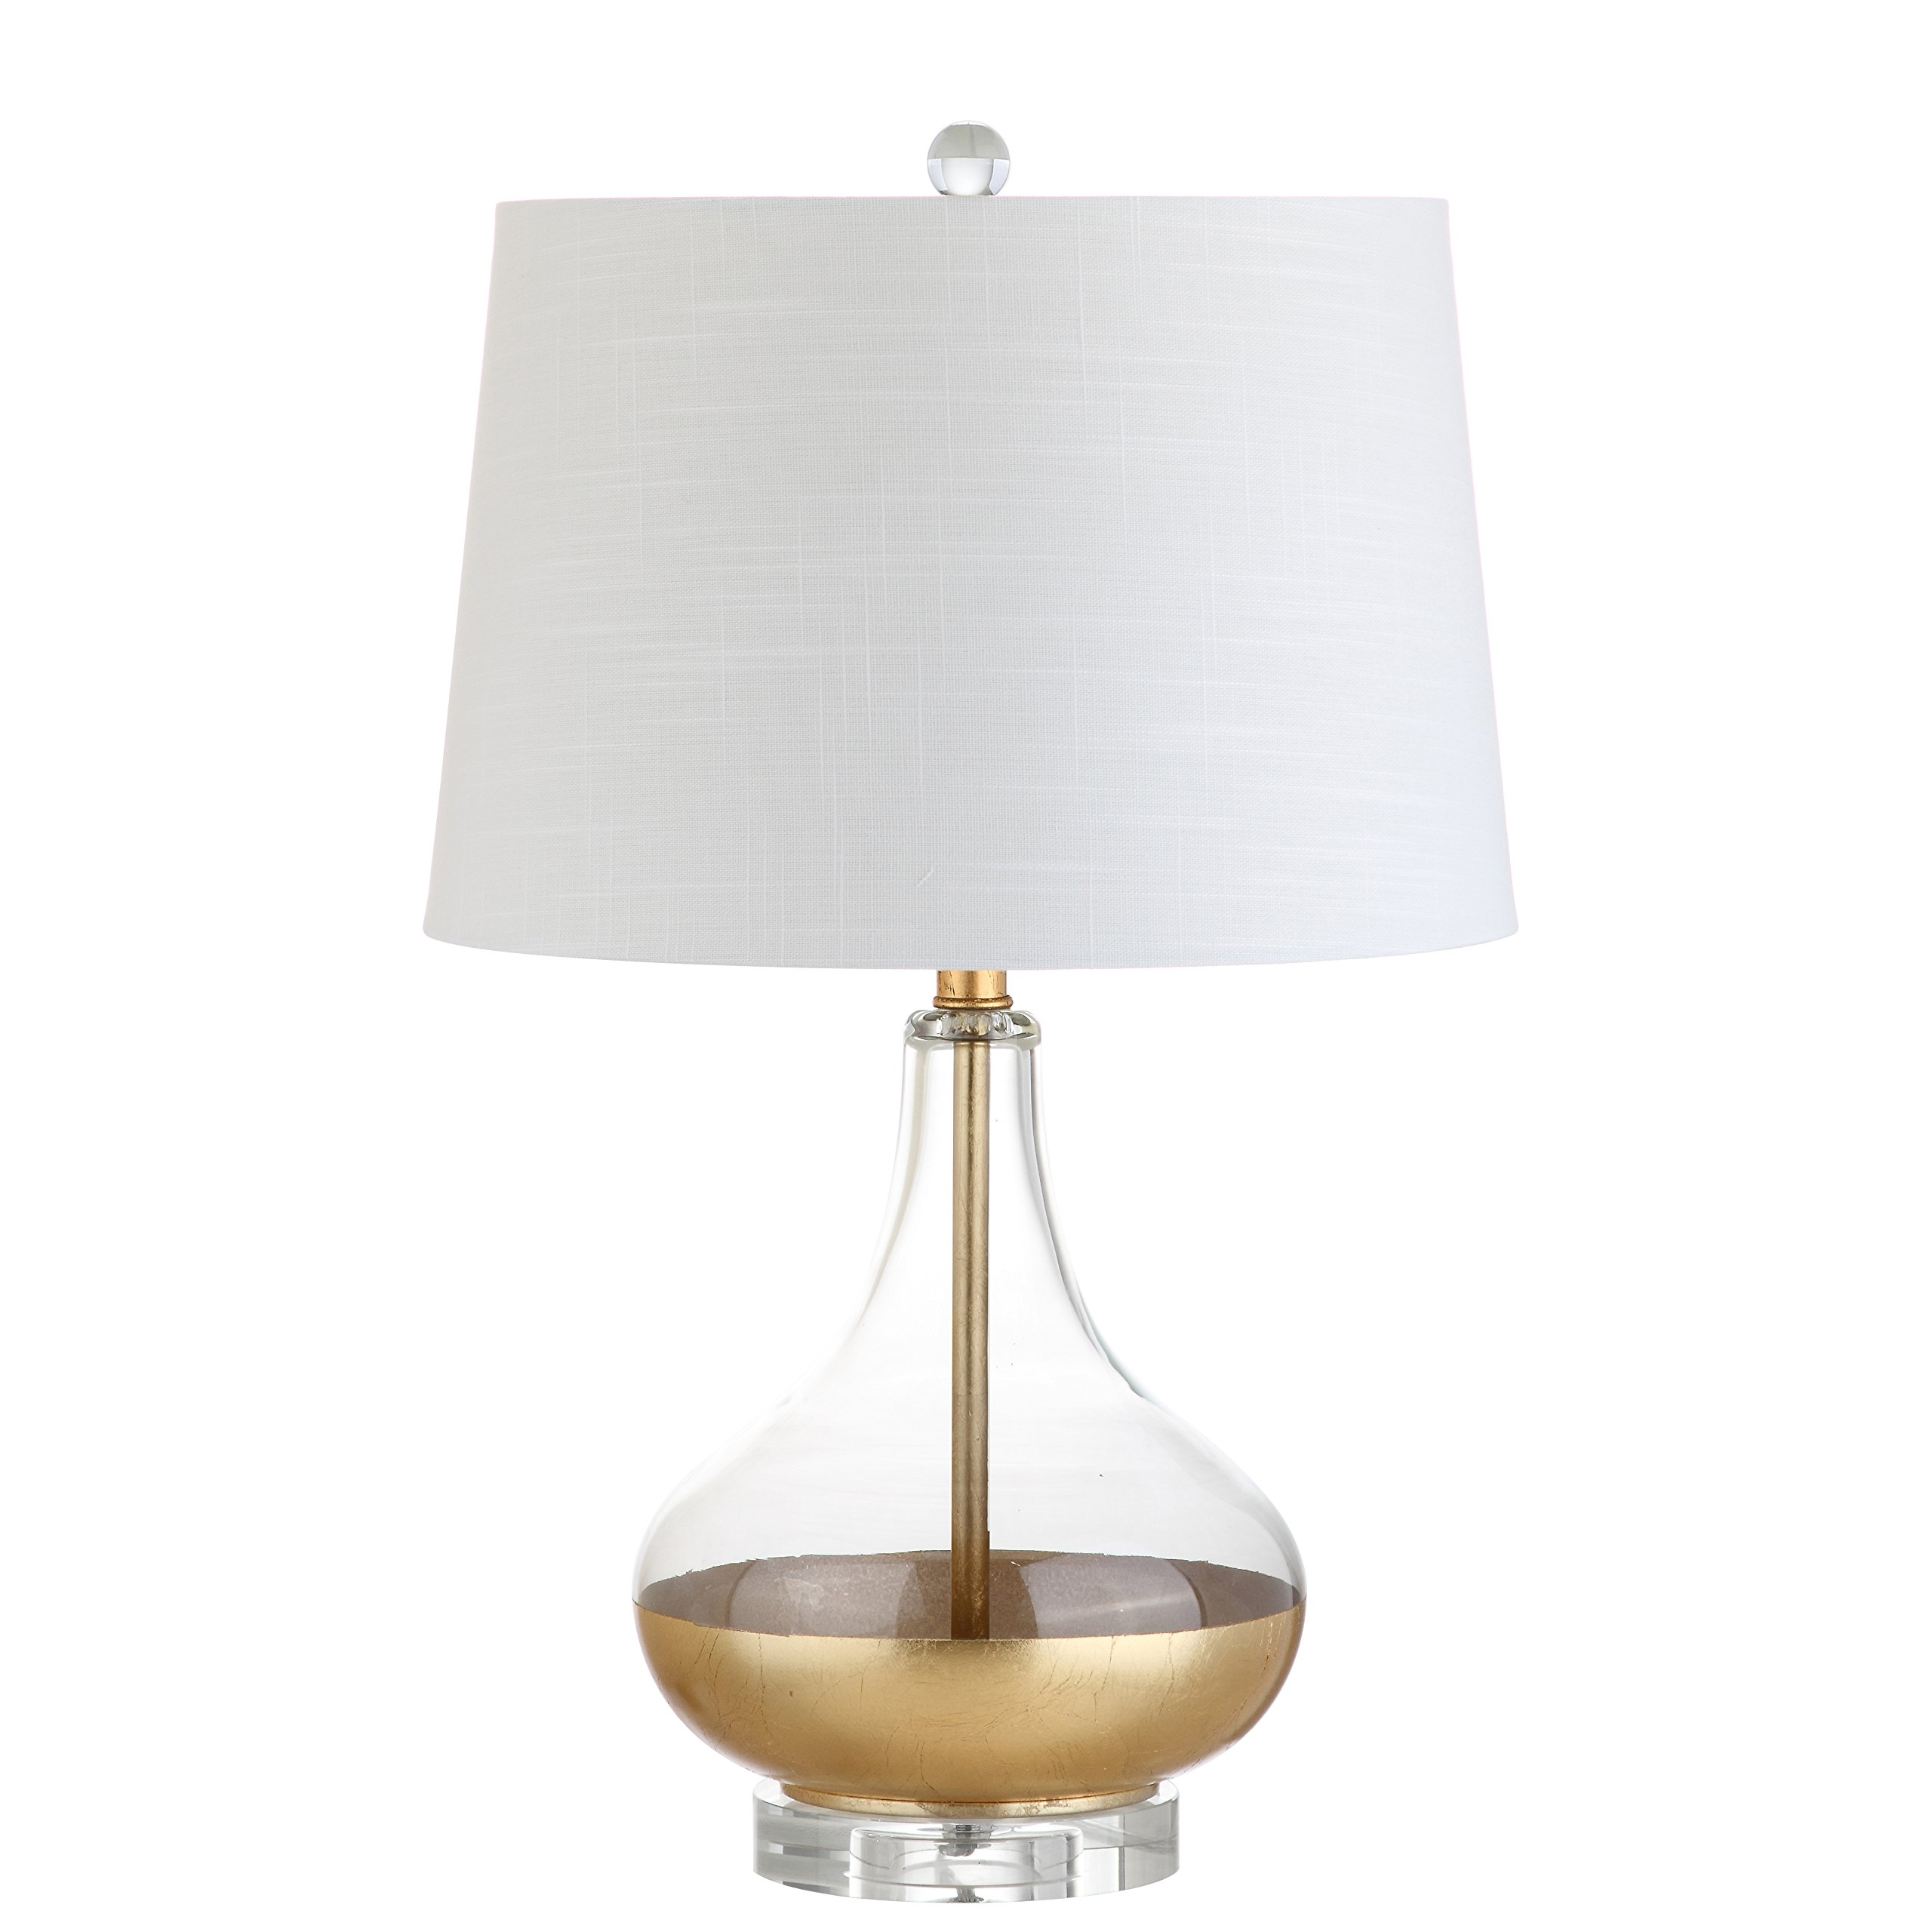 Jonathan Y JYL5007A Table Lamp, 15'' x 24.5'' x 15'', Clear/Gold with White Shade